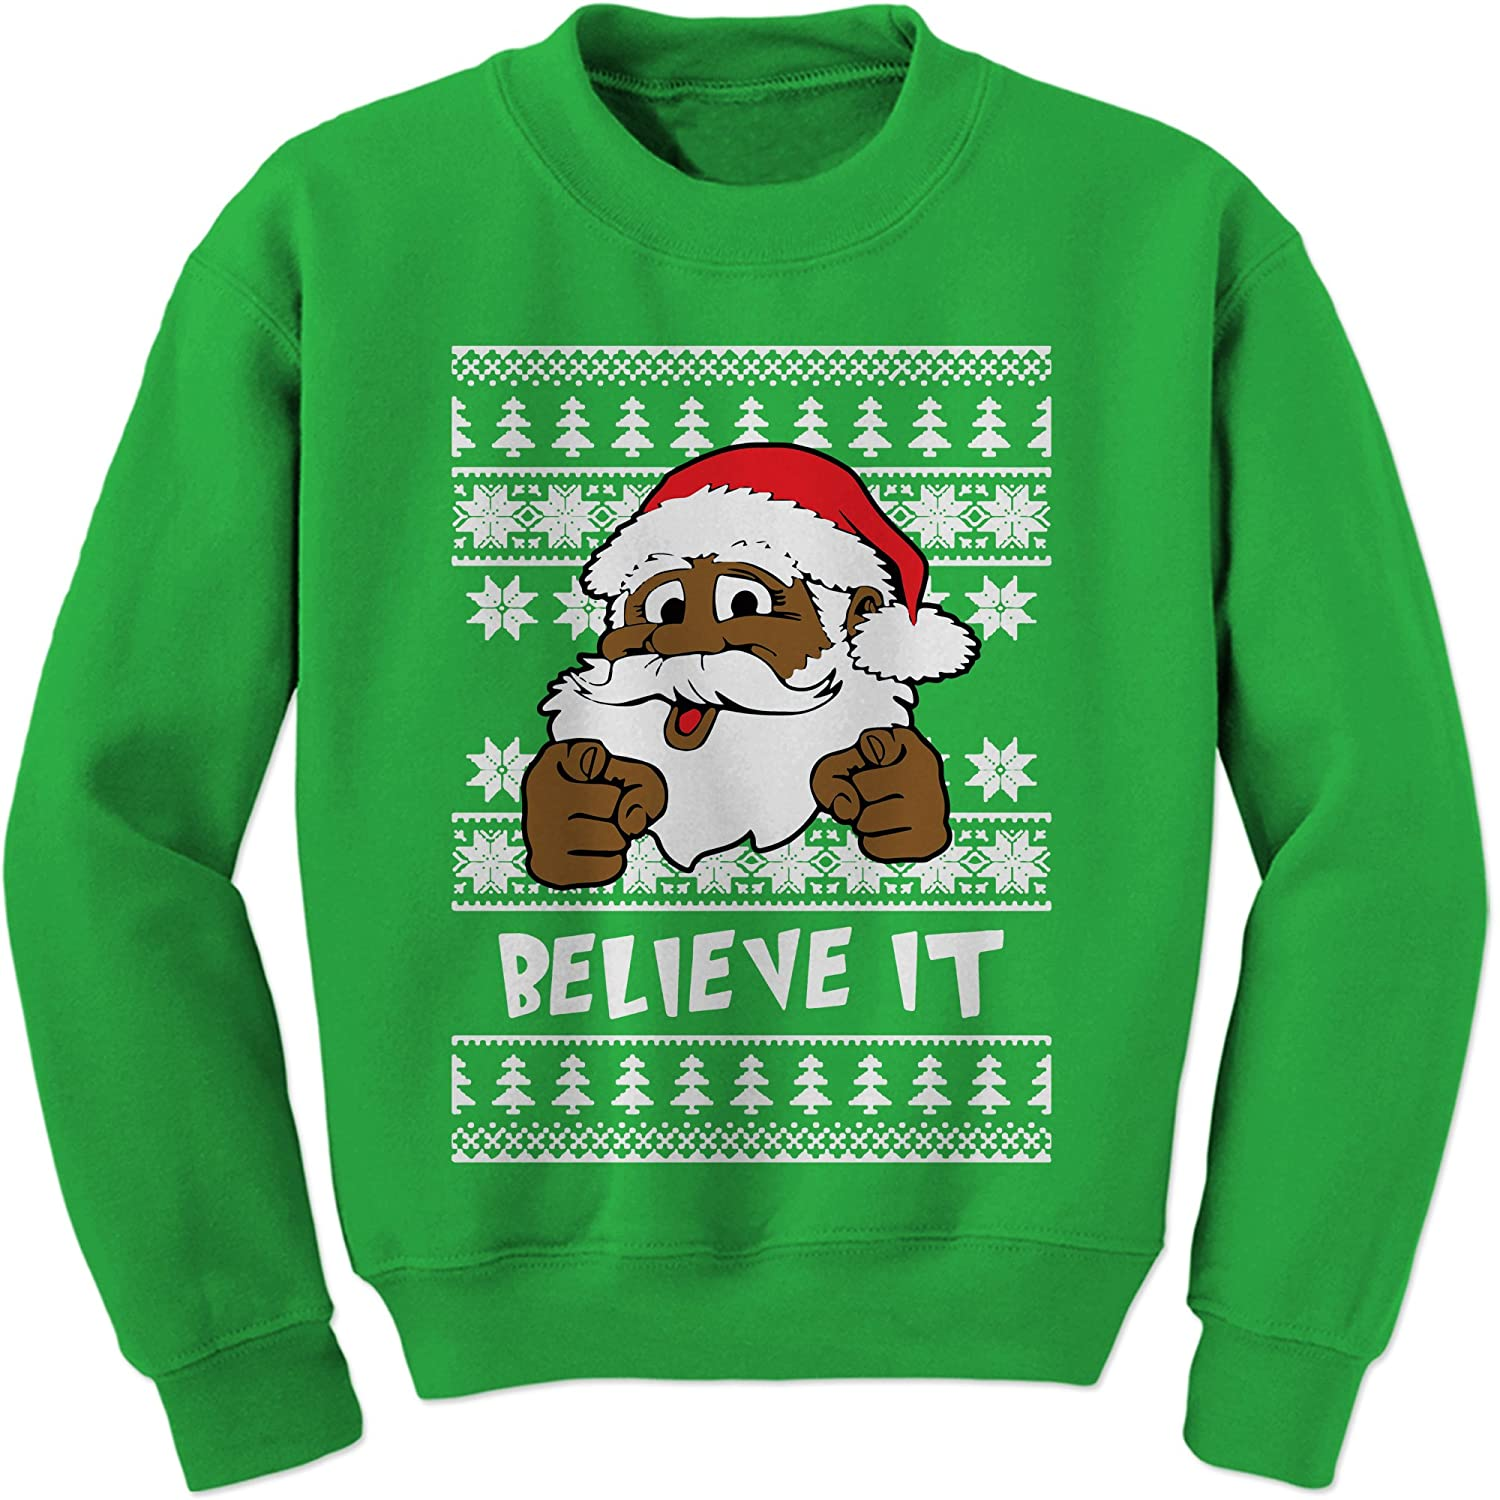 Expression Tees Believe It! Black Santa Clause Ugly Christmas Crewneck Sweatshirt 8062-C